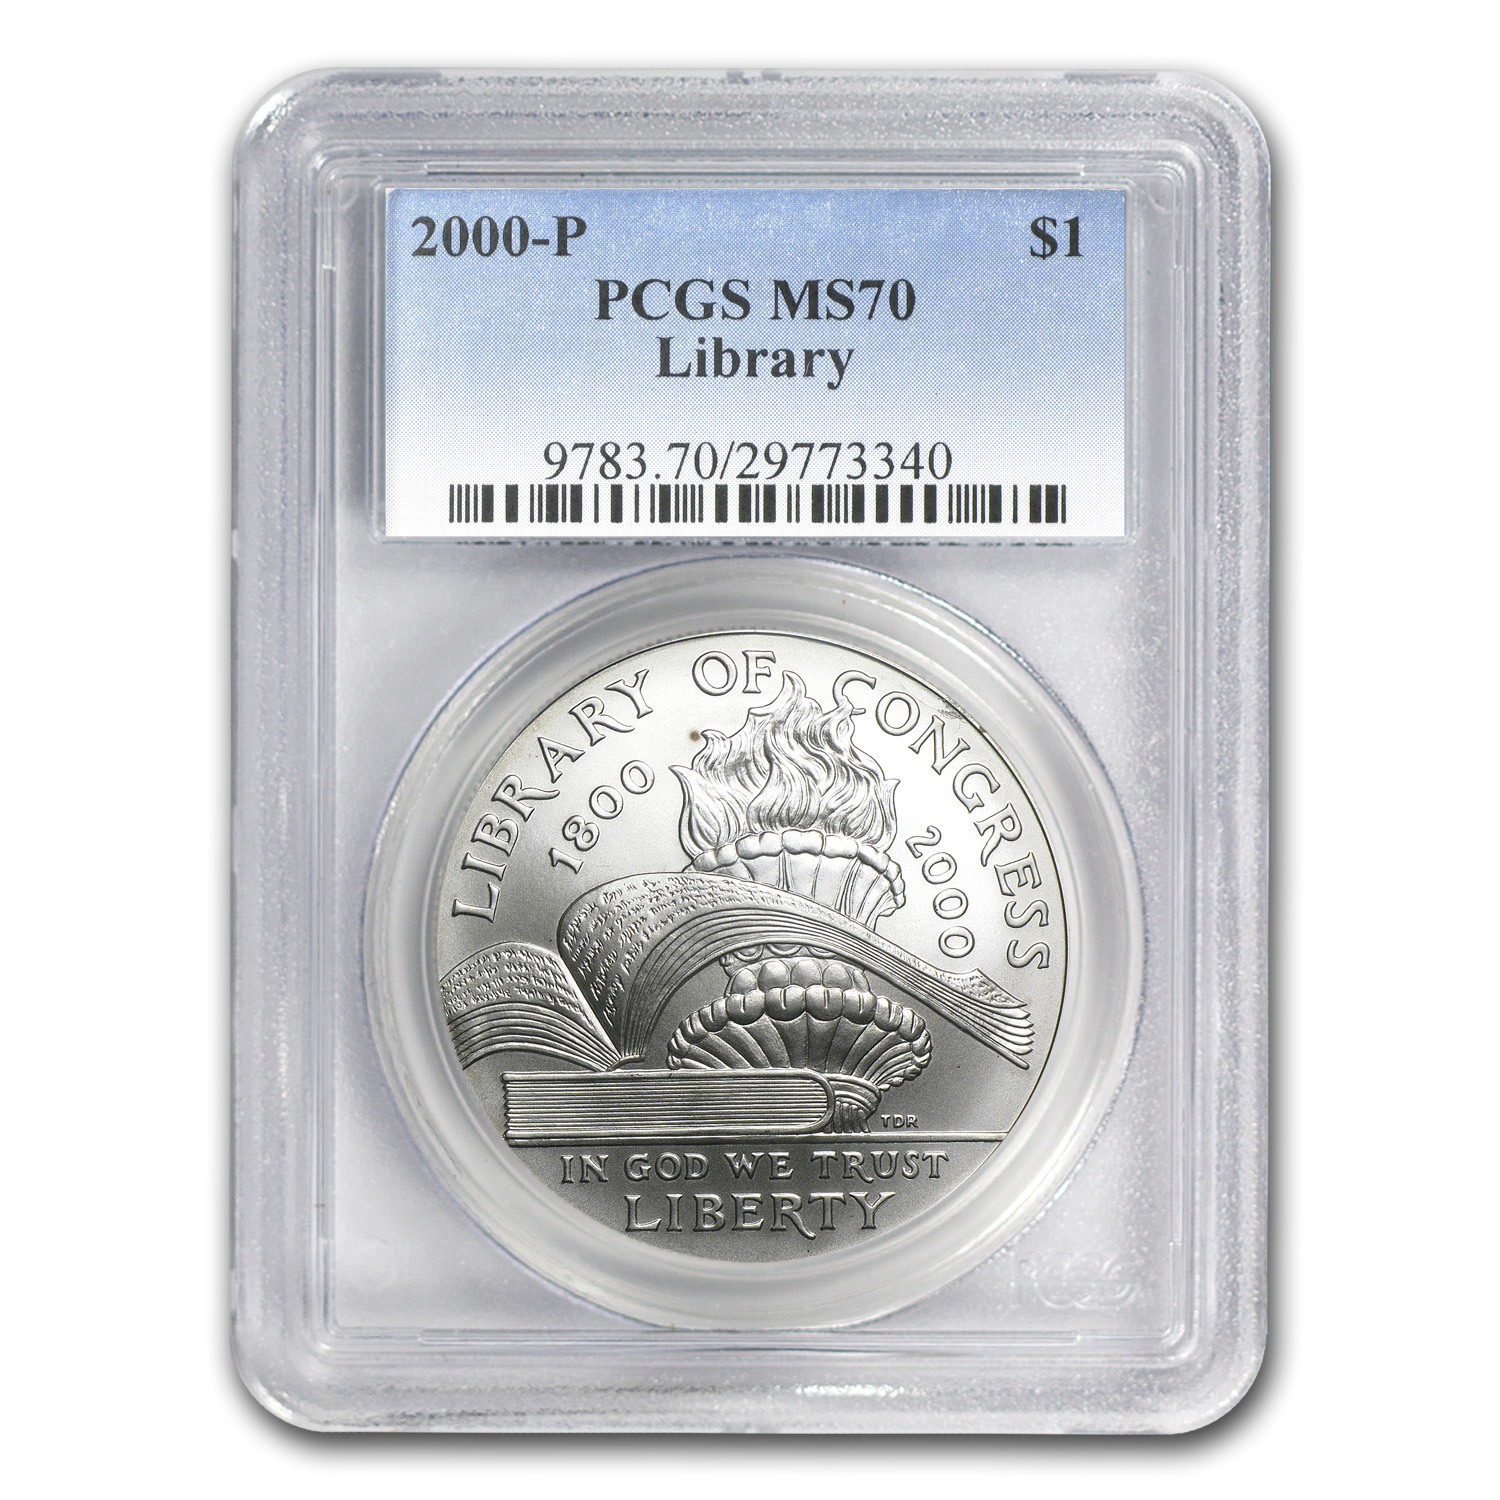 2000-P Library of Congress $1 Silver Commemorative MS-70 PCGS